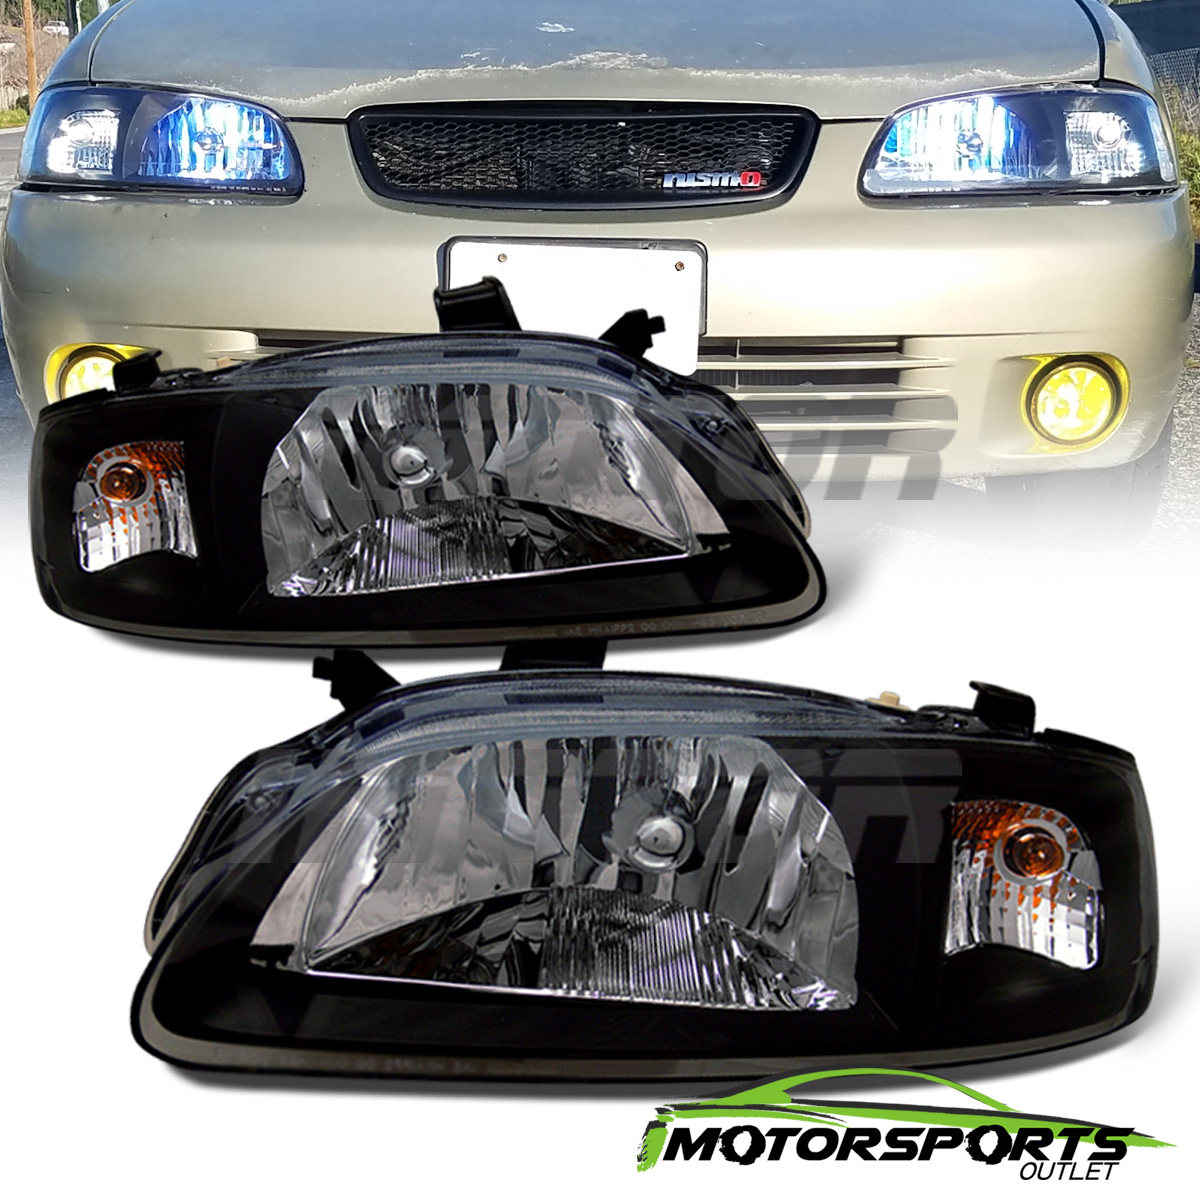 how to change the headlight on a nissan sentra 2002